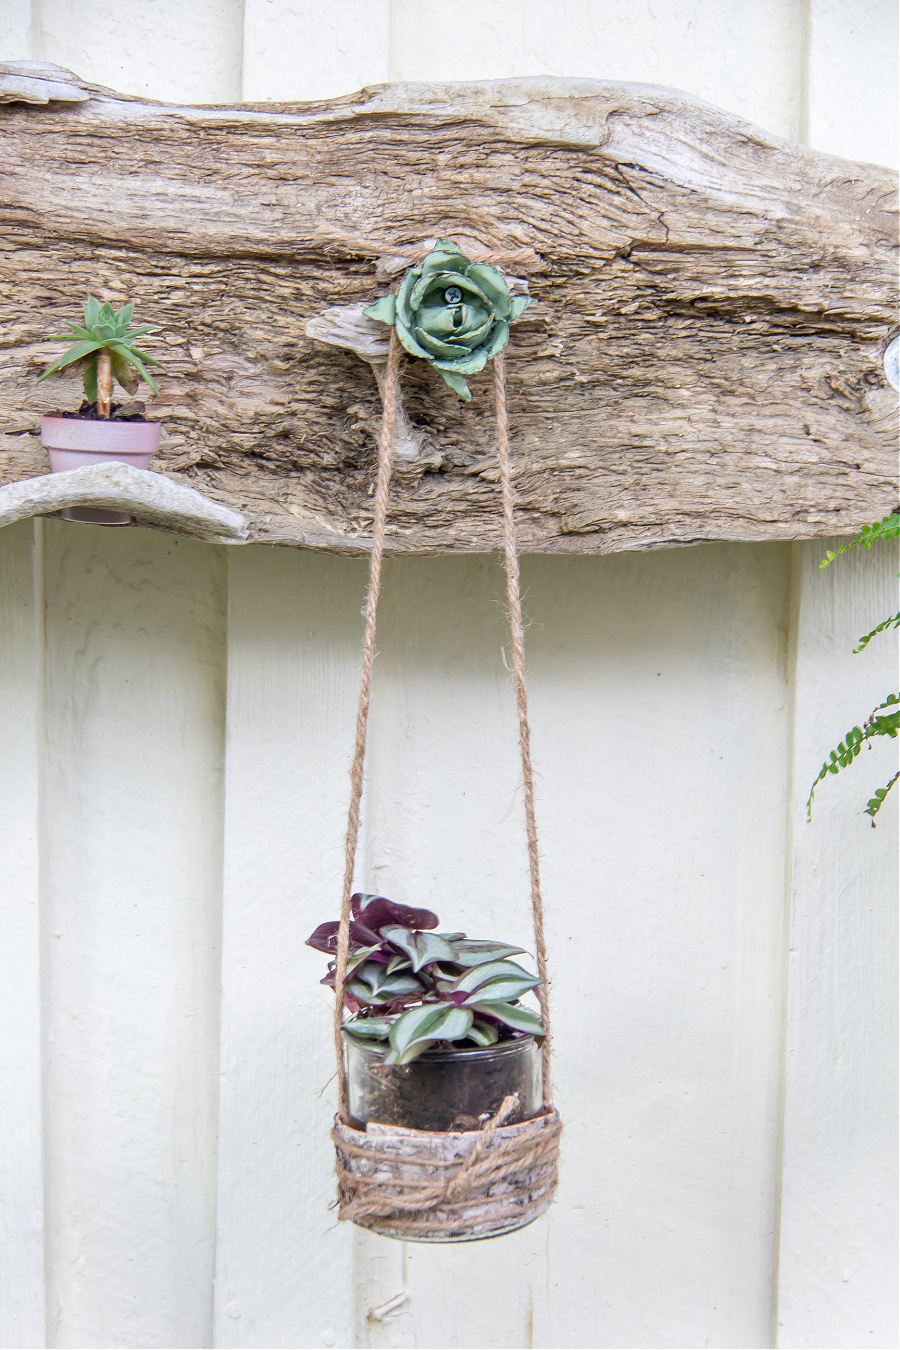 a green metal flower screwed to driftwood to hang a planter